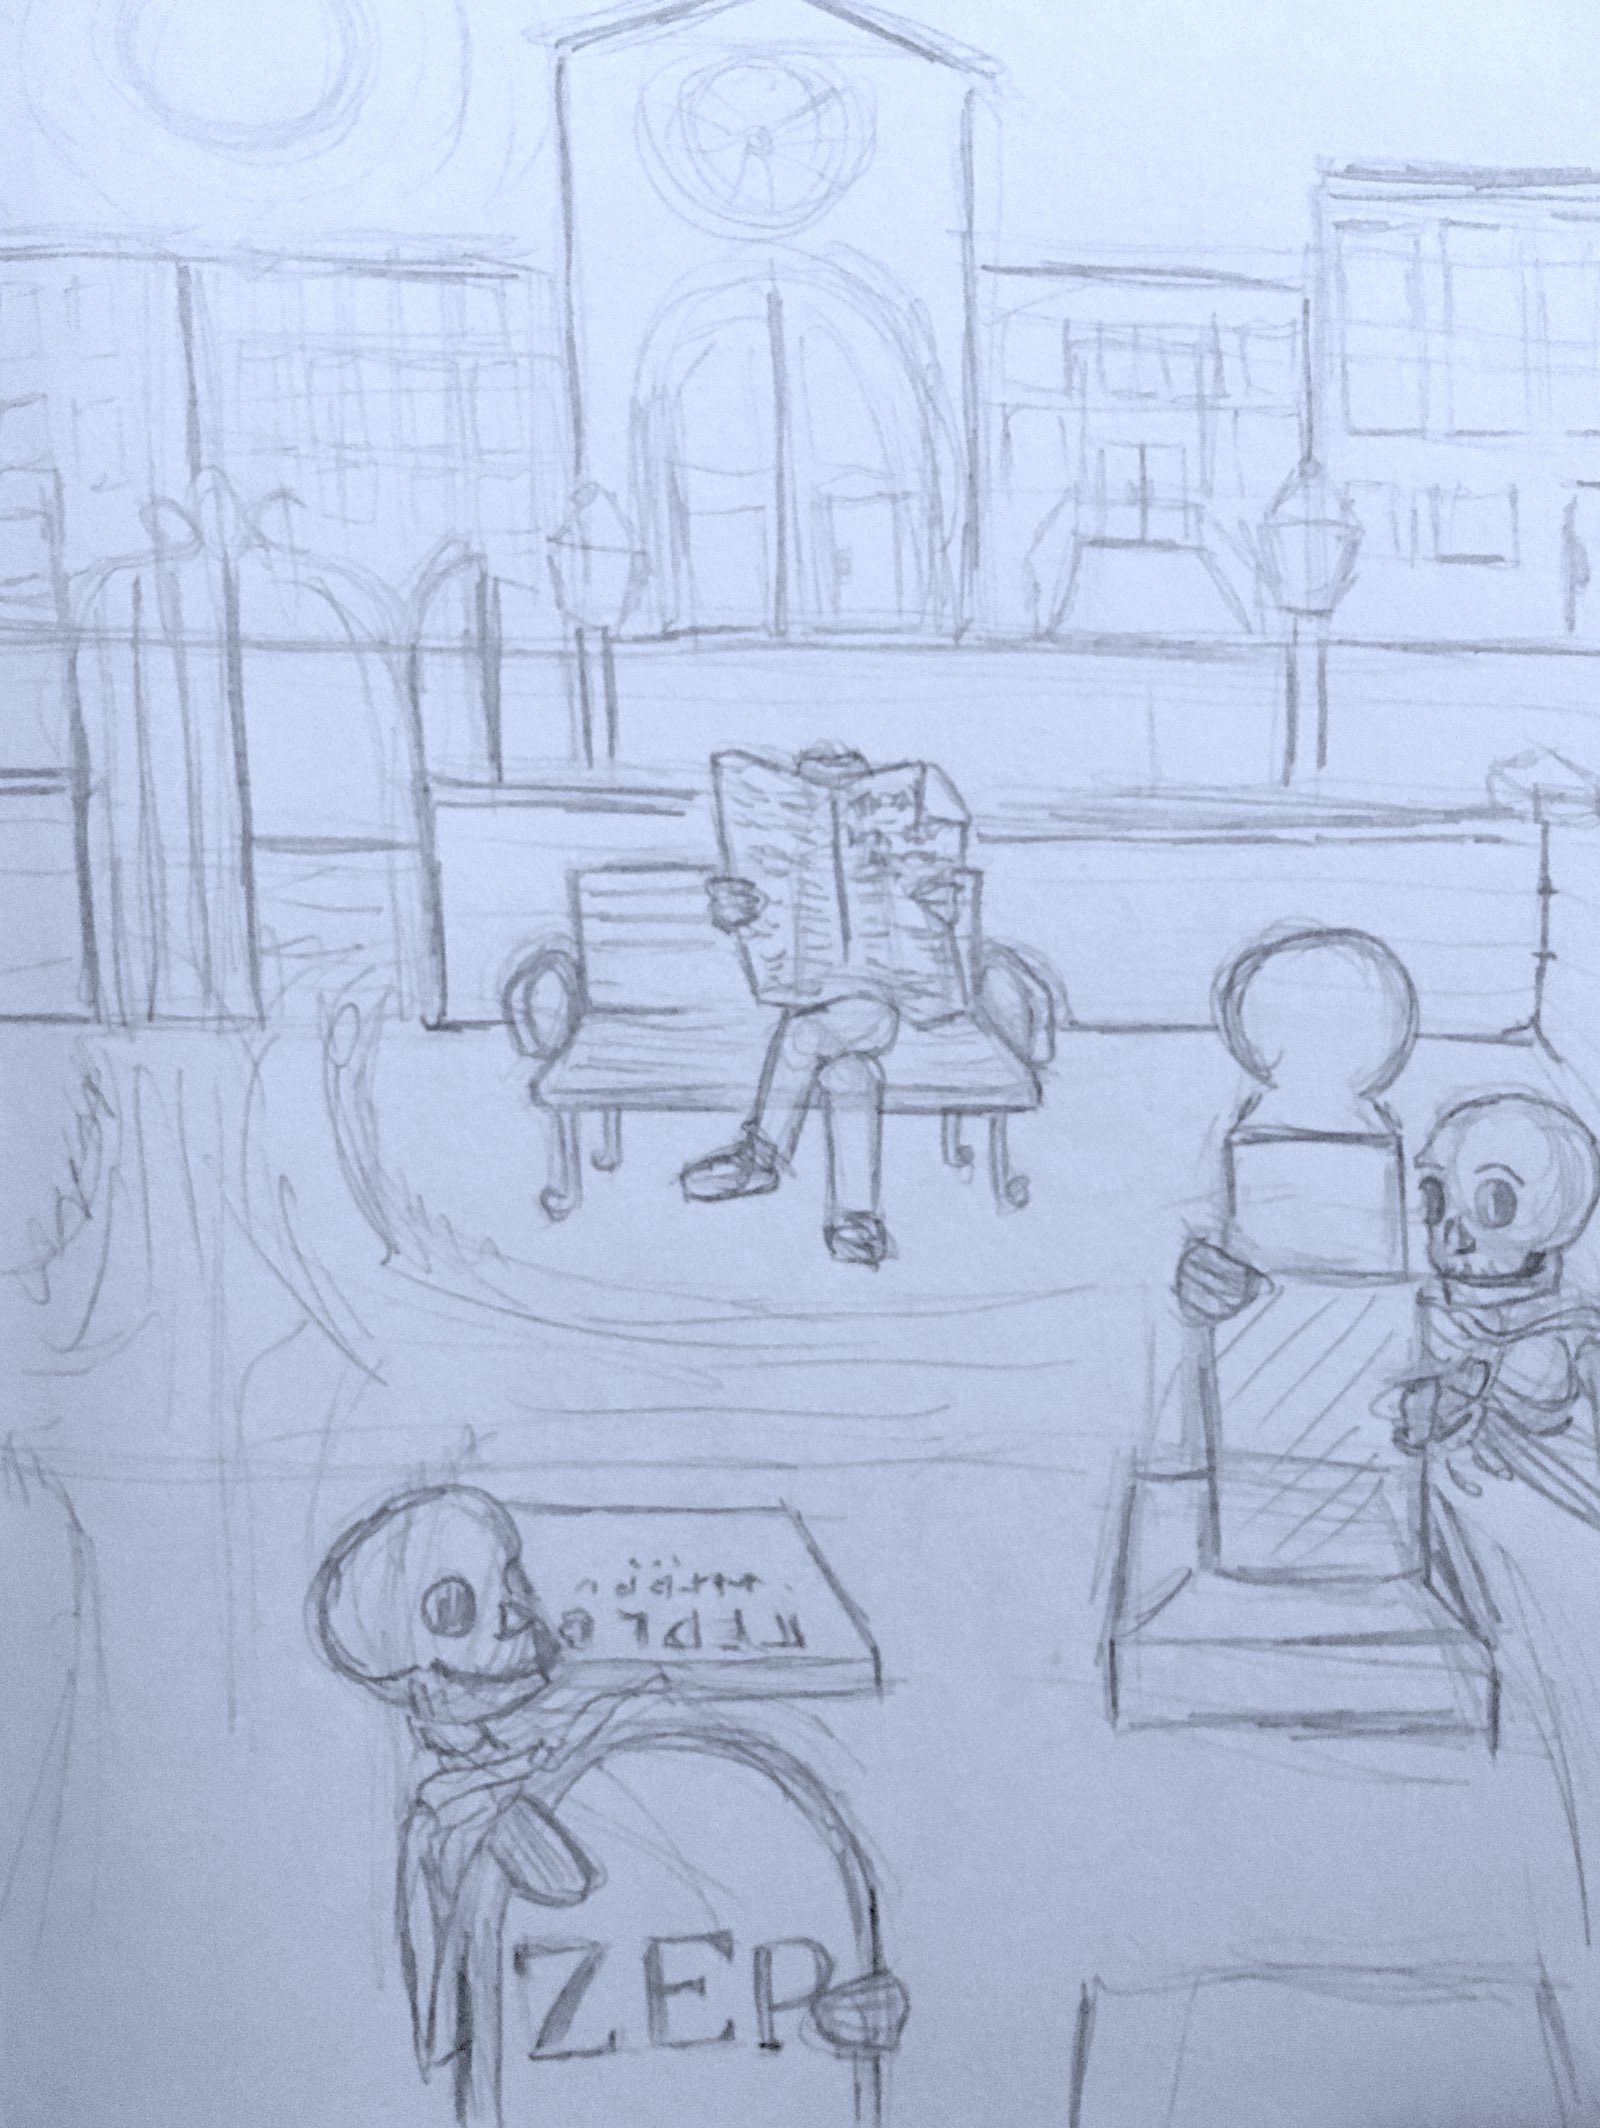 A sketch of scene 1, featuring a human reading a newspaper